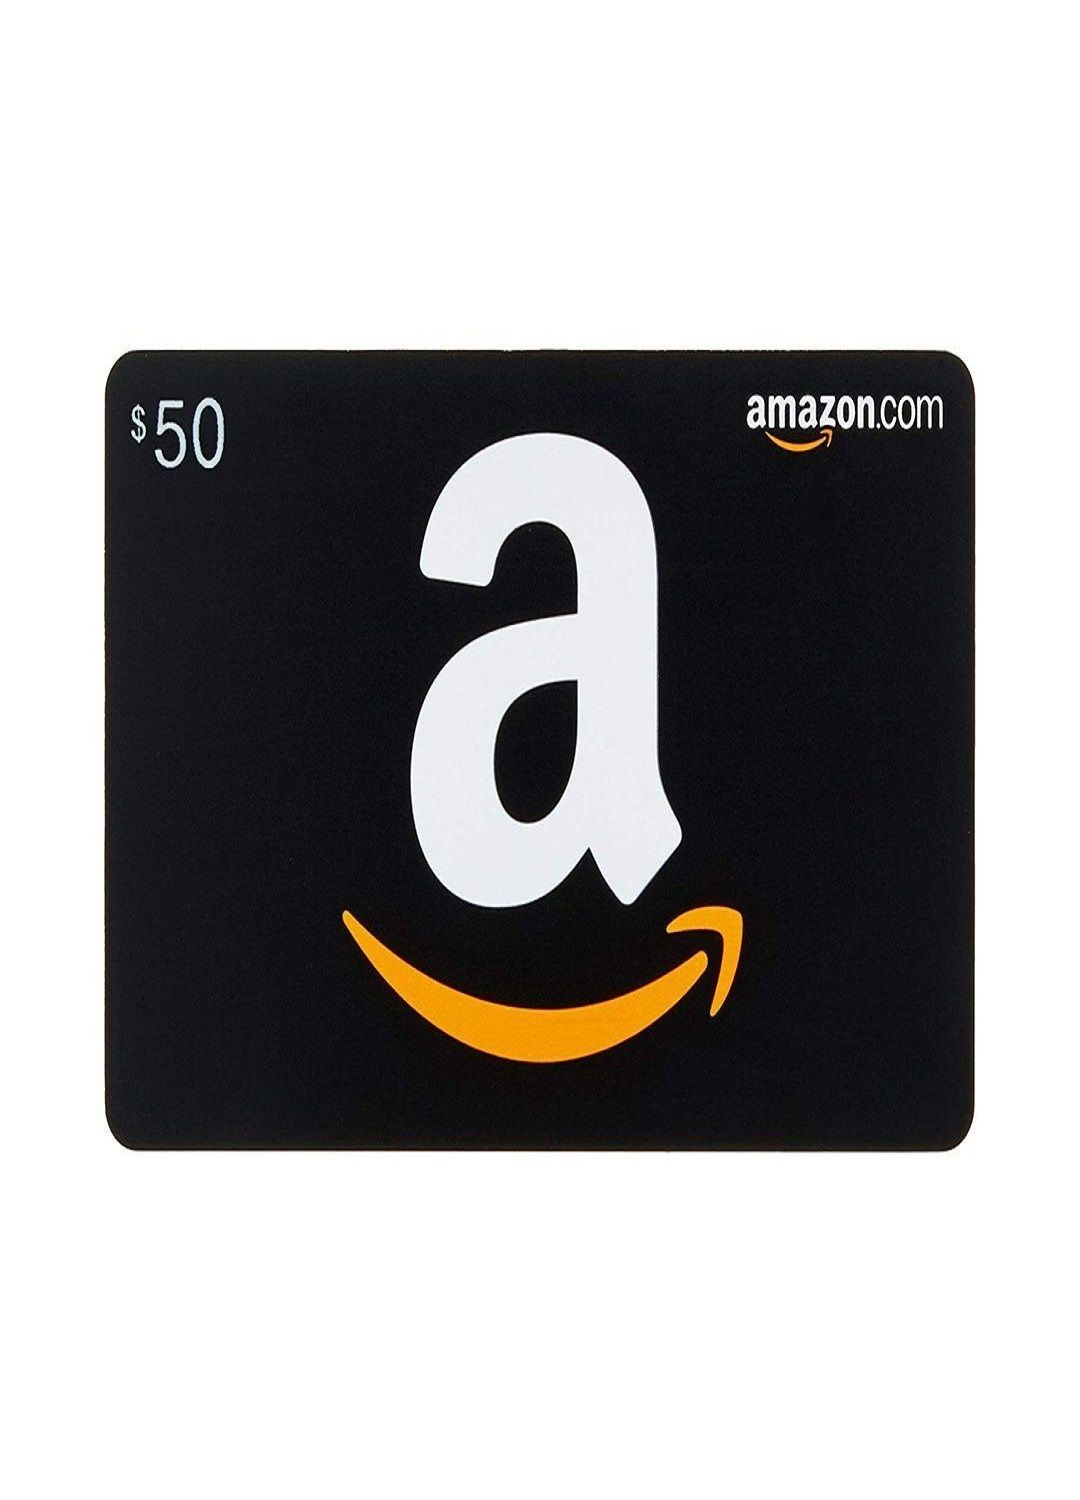 Get And Update Daily Amazon Gift Card For 2020 Free Amazon Gift Cards Amazon Gift Card Free Free Gift Card Generator